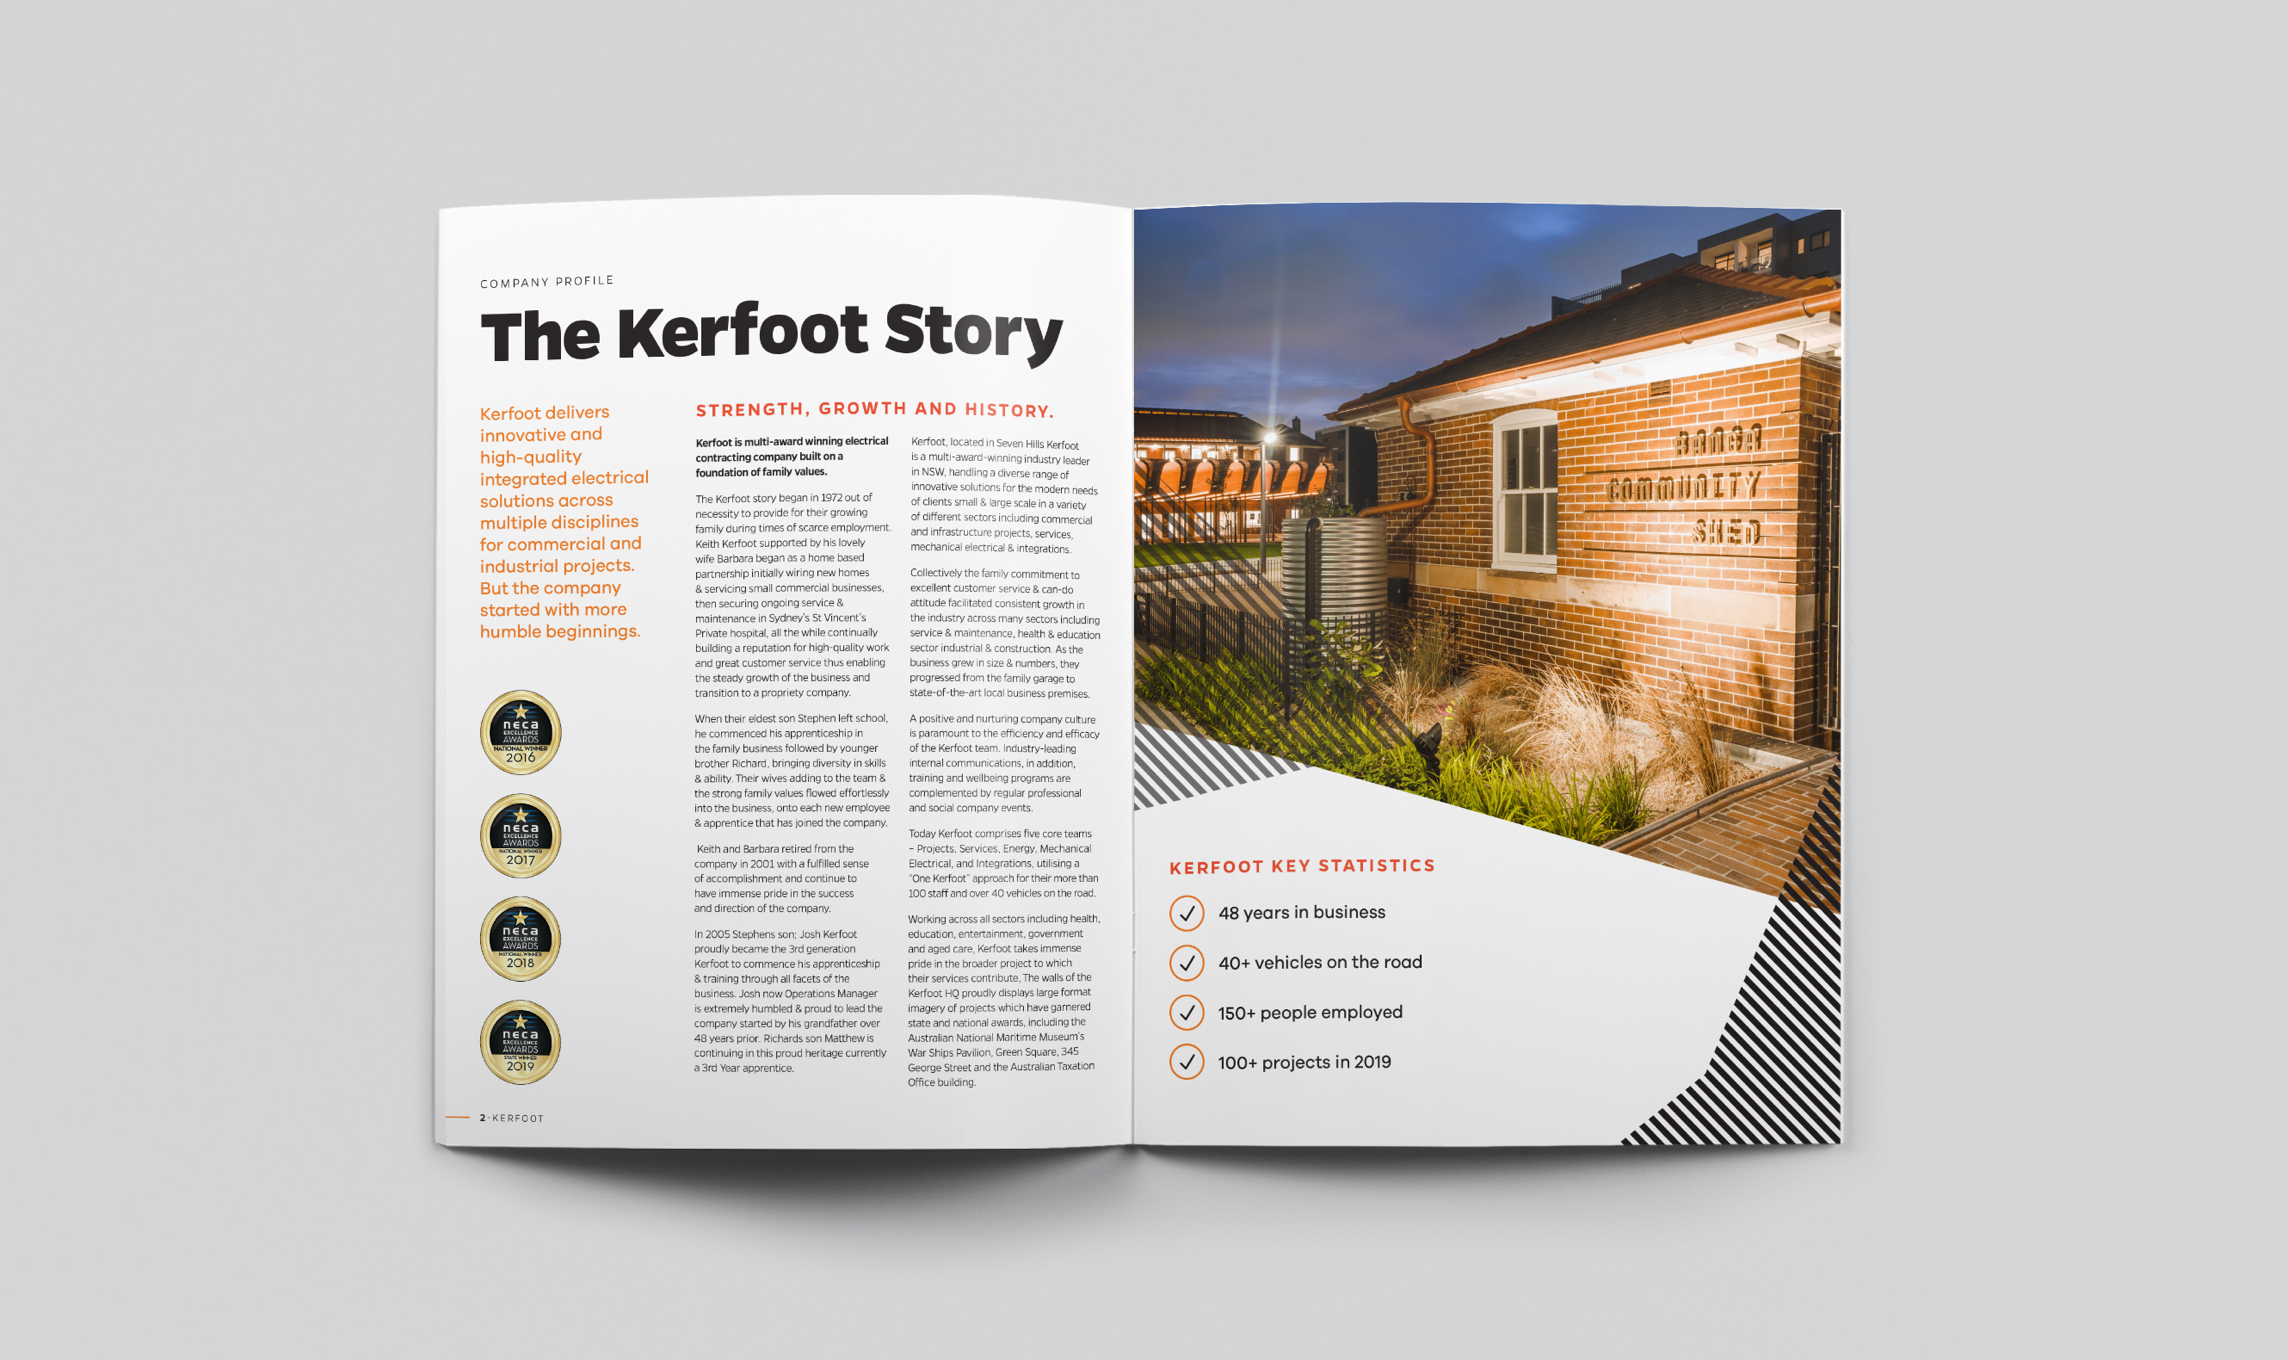 Kerfoot Brand Book - The Kerfoot Story